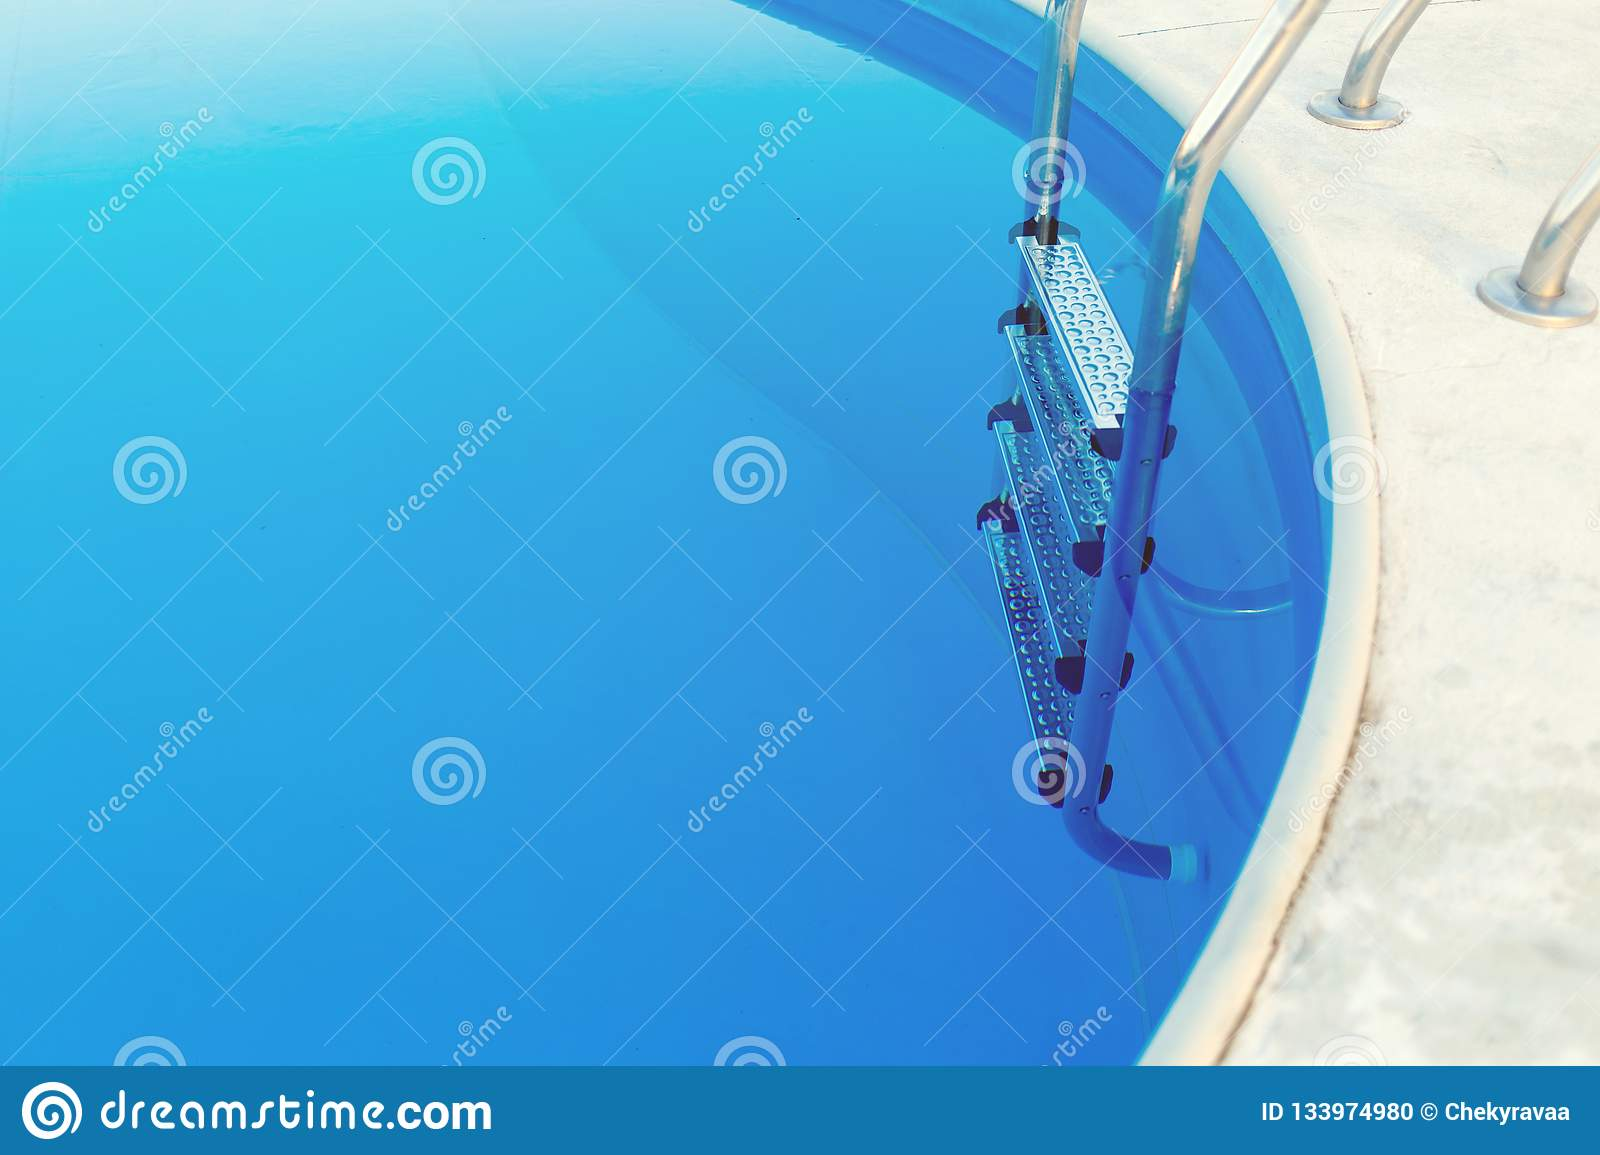 Close-up of a part of swimming pool with a stainless steel ladder and blue water on sunset. Summer vacation, holidays, relax